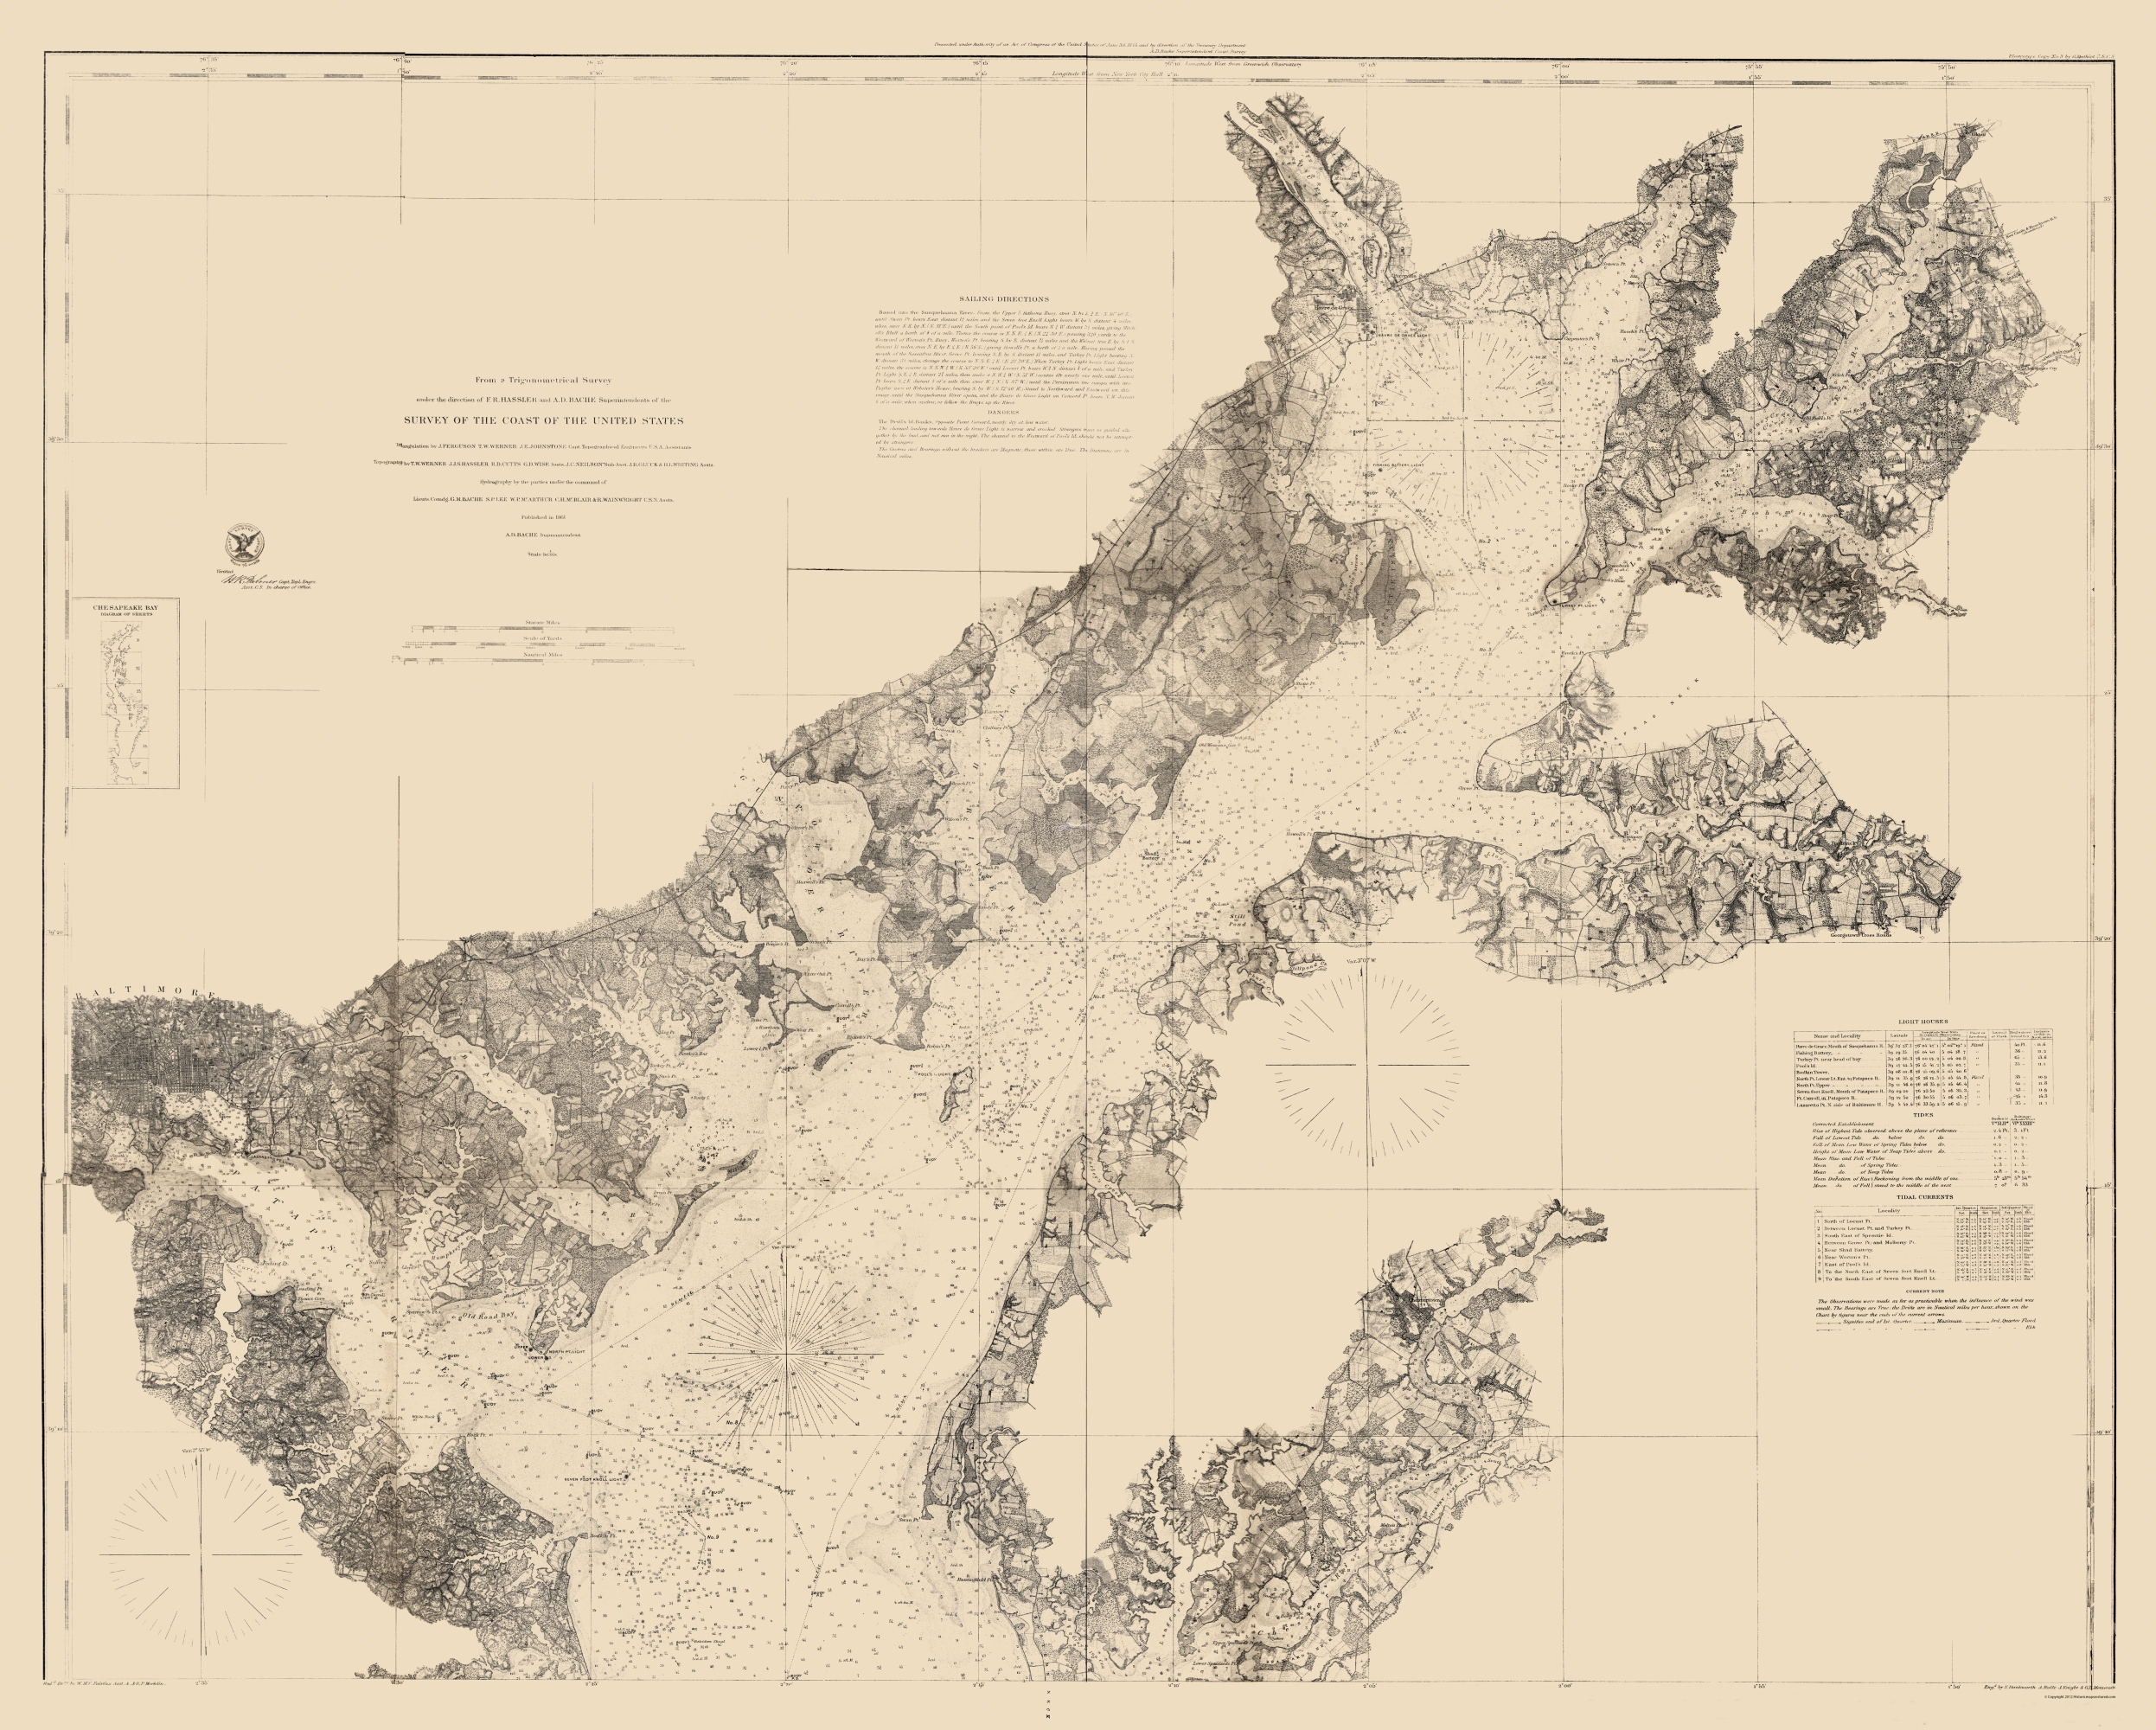 Civil War Map - Chesapeake Bay Nautical Chart 1861